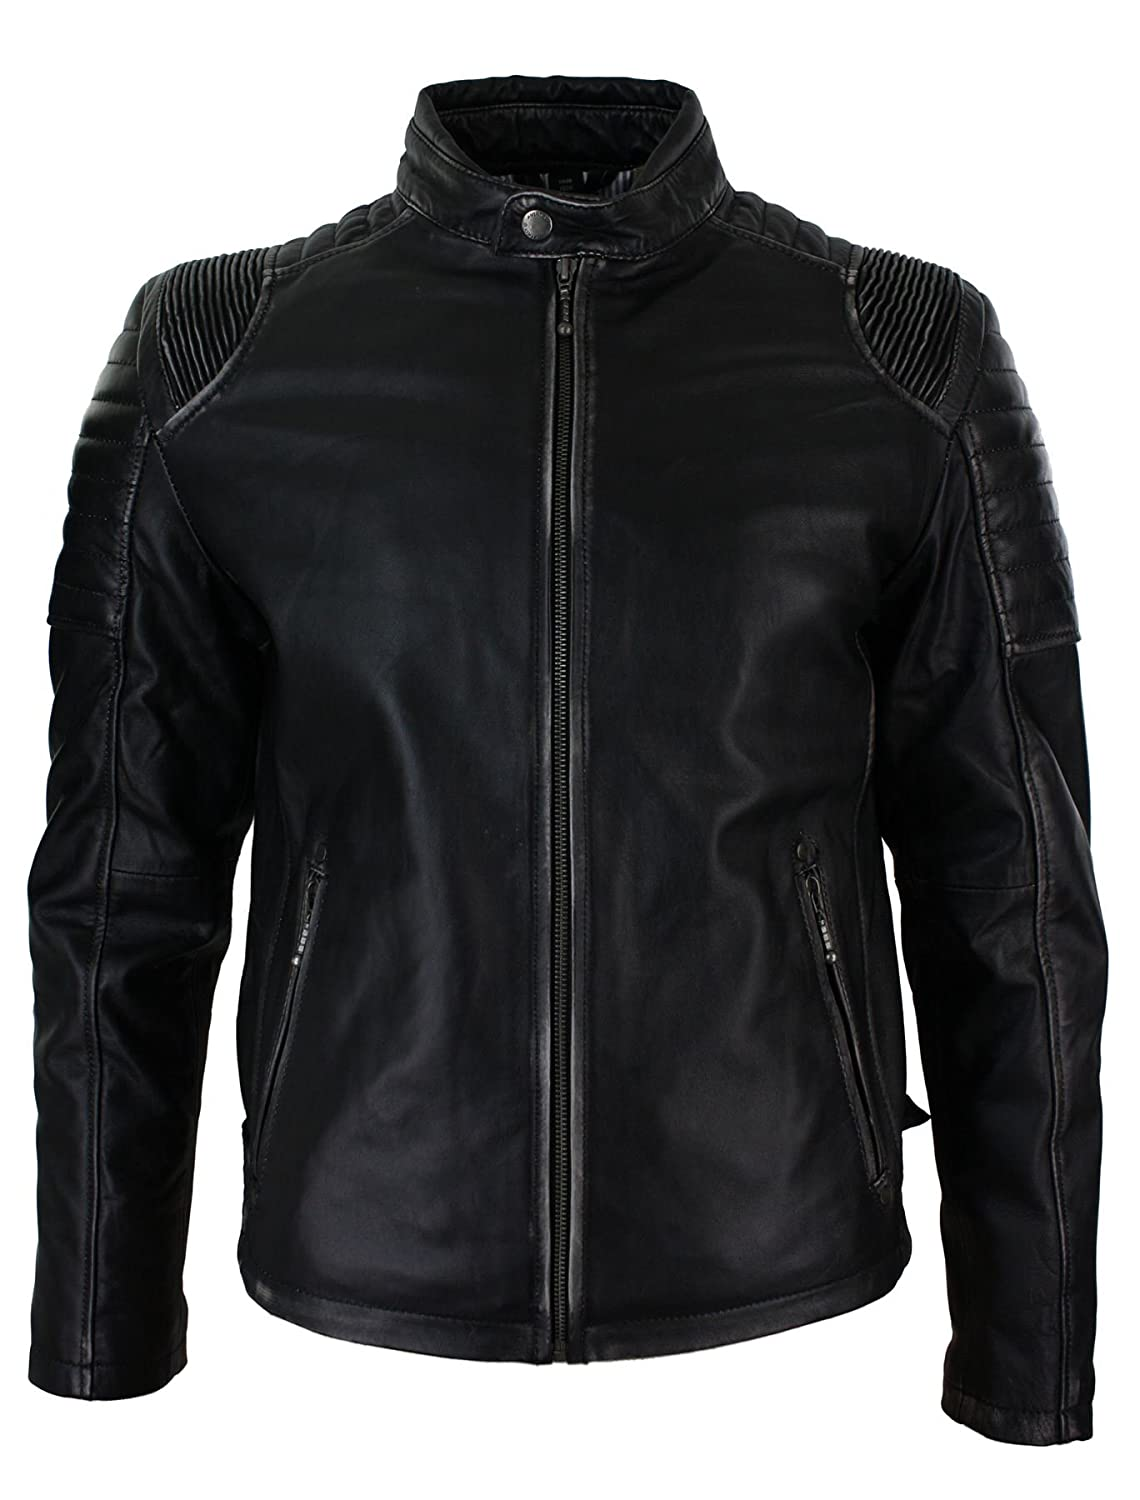 Mens Black Ruboff Washed Vintage Effect Leather Jacket Fitted Biker Style Casual